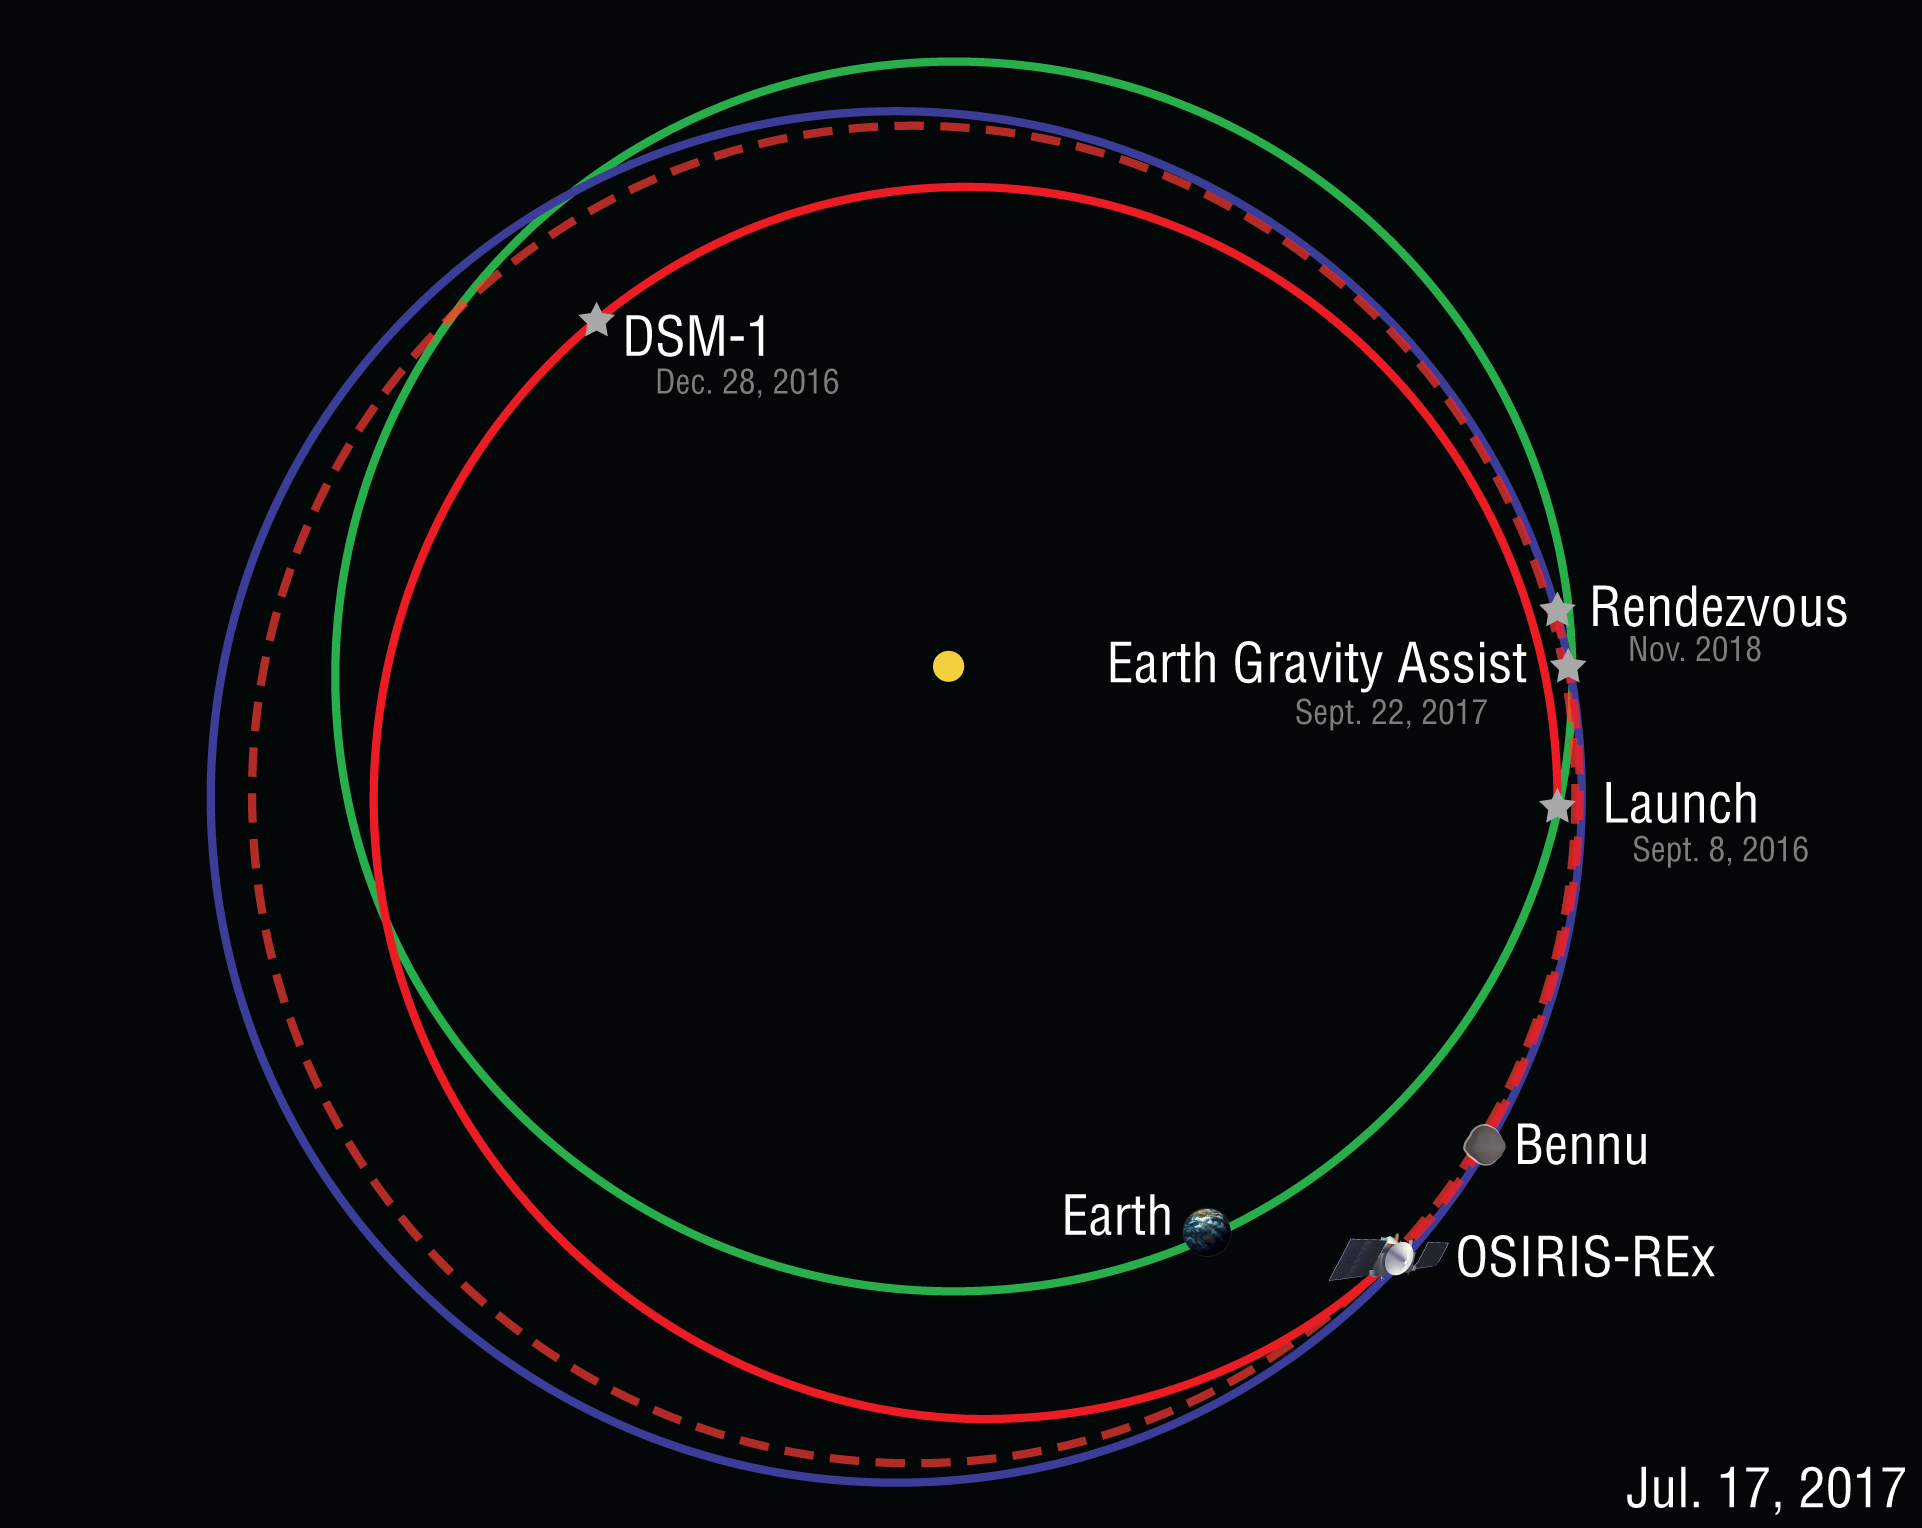 http://www.asteroidmission.org/wp-content/uploads/2017/07/Orbit-Diagram-7-17-17.png